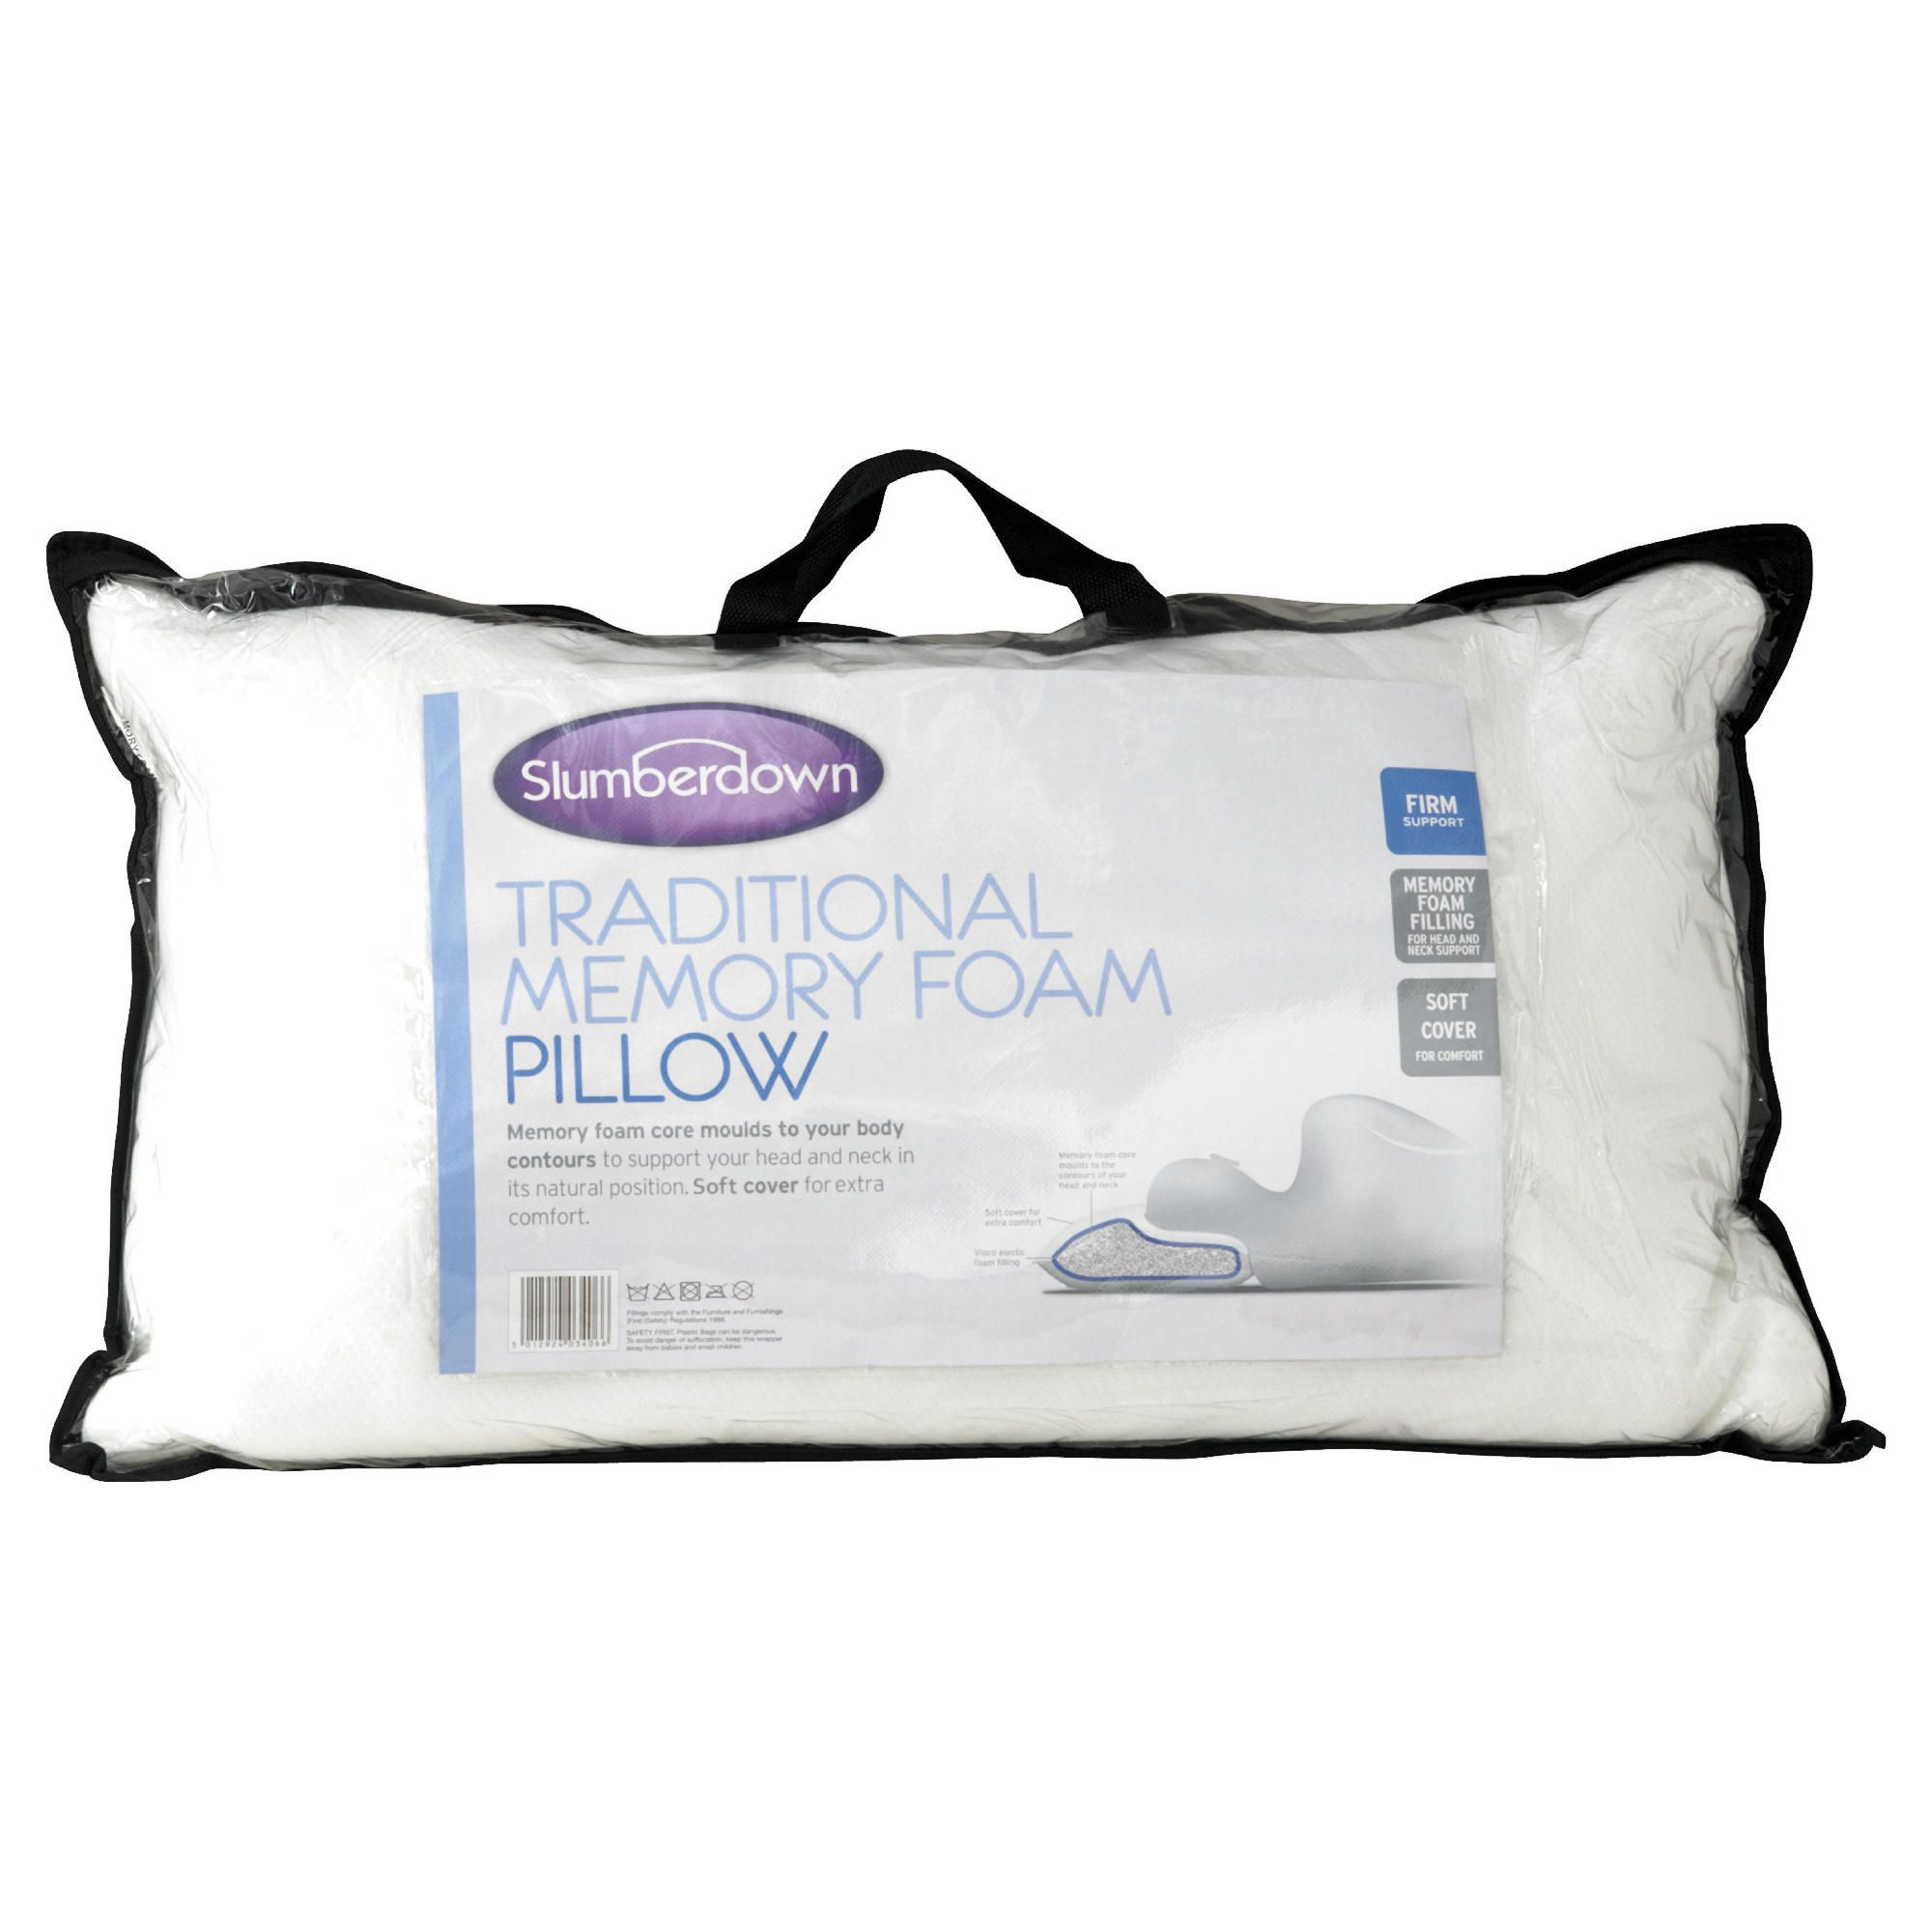 Slumberdown Traditional Memory Foam Pillow : Myshop